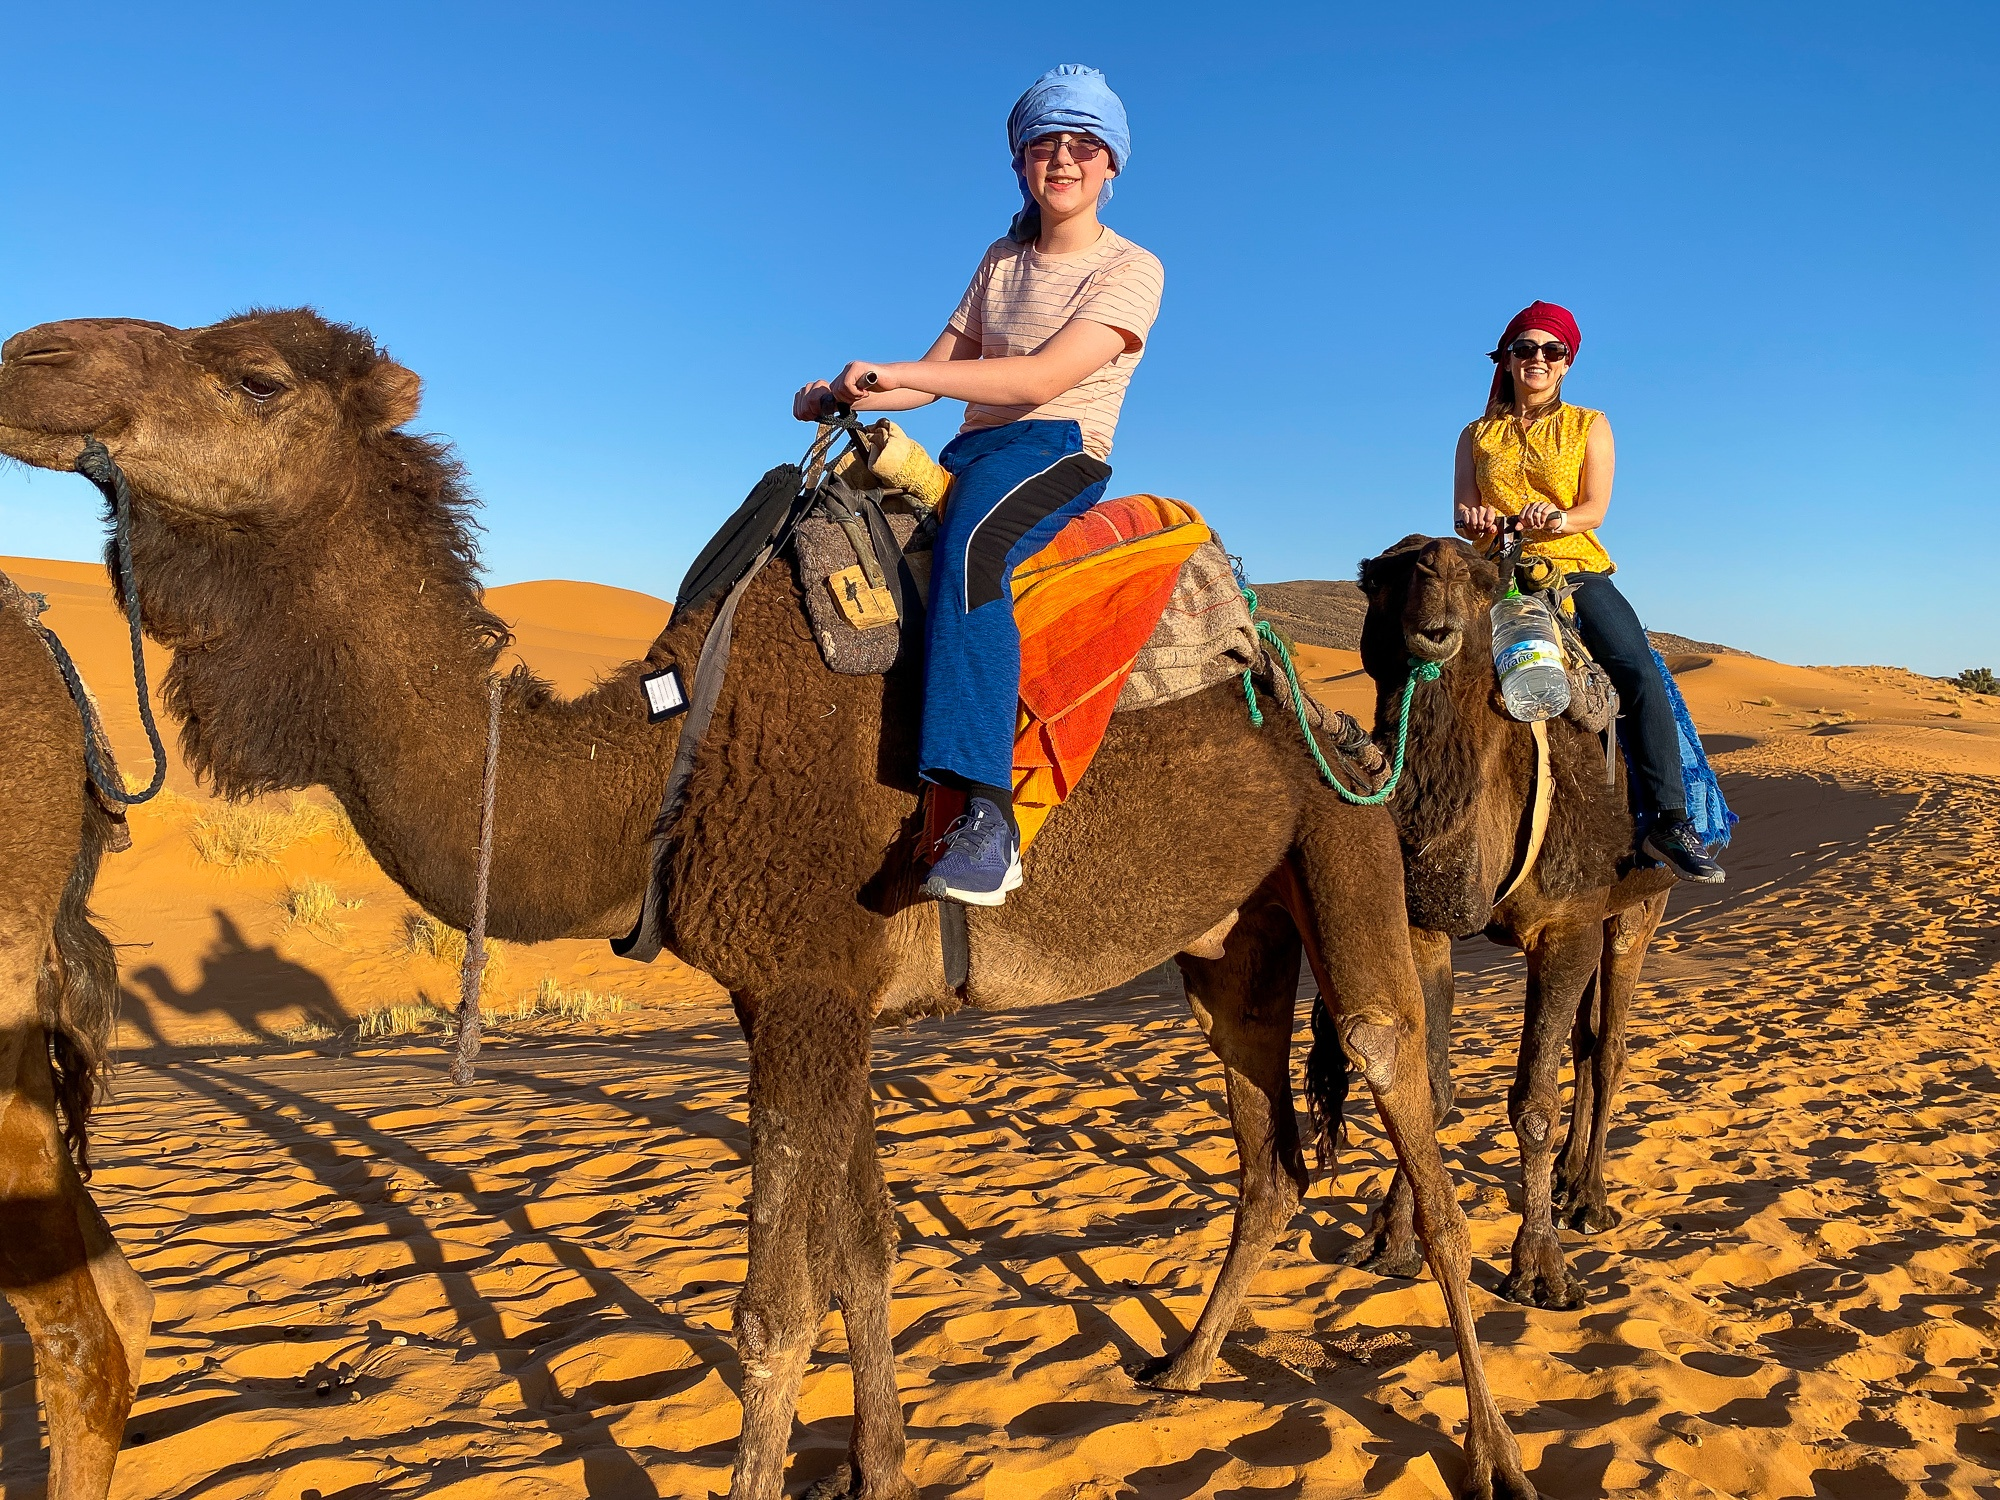 Son and mom atop dromedaries in the Saharan Desert in Morocco